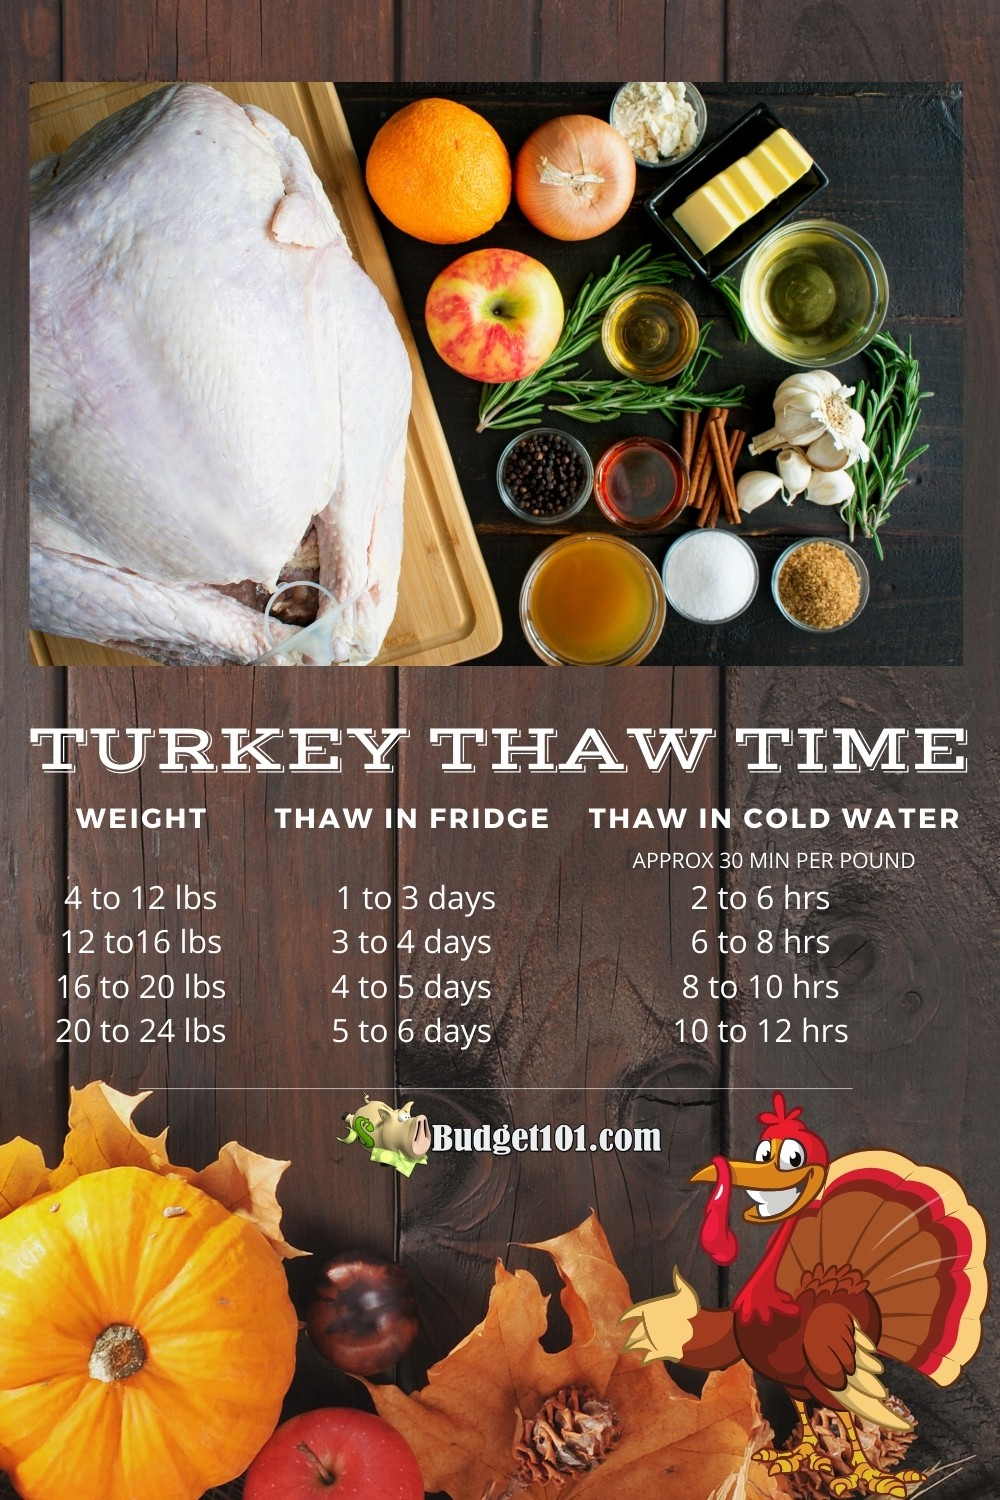 Forgot to defrost the turkey? Here's How to safely thaw a frozen turkey fast, how long it will take, what you'll need, & what NOT to do! #Thanksgiving #TurkeyTime #Thaw #Defrost #OAMC #CookingTips #CookingHacks #Budget101 #FoodSafety